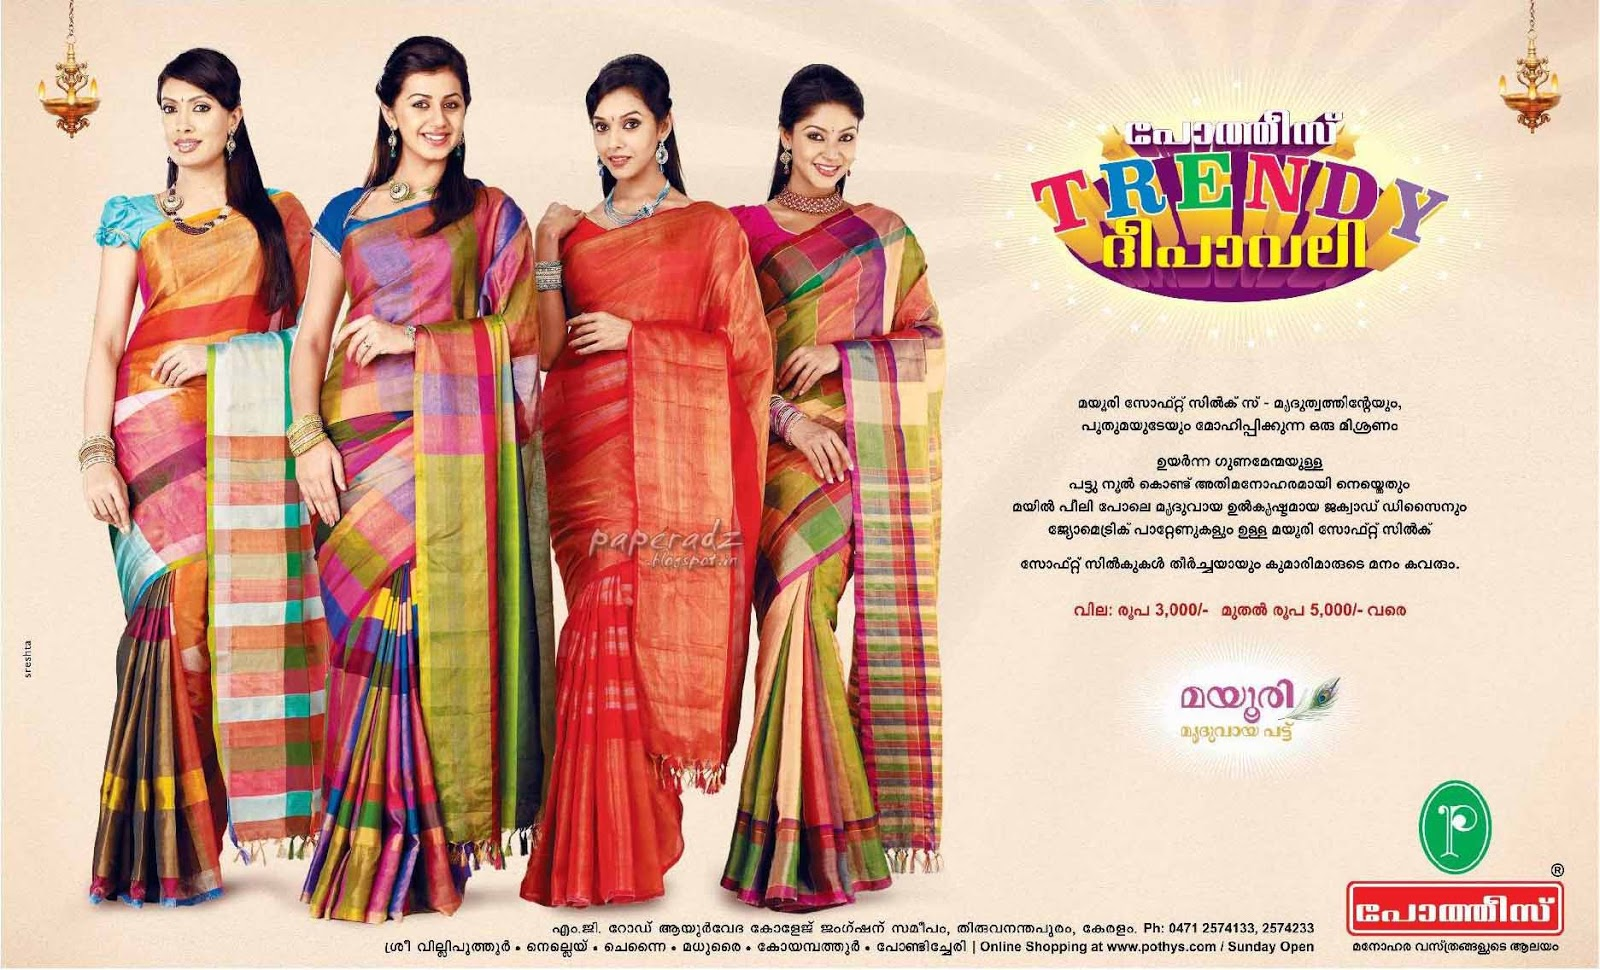 Pothys deepavali sale 2012 advertisements news paper for Hm diwan jewellers